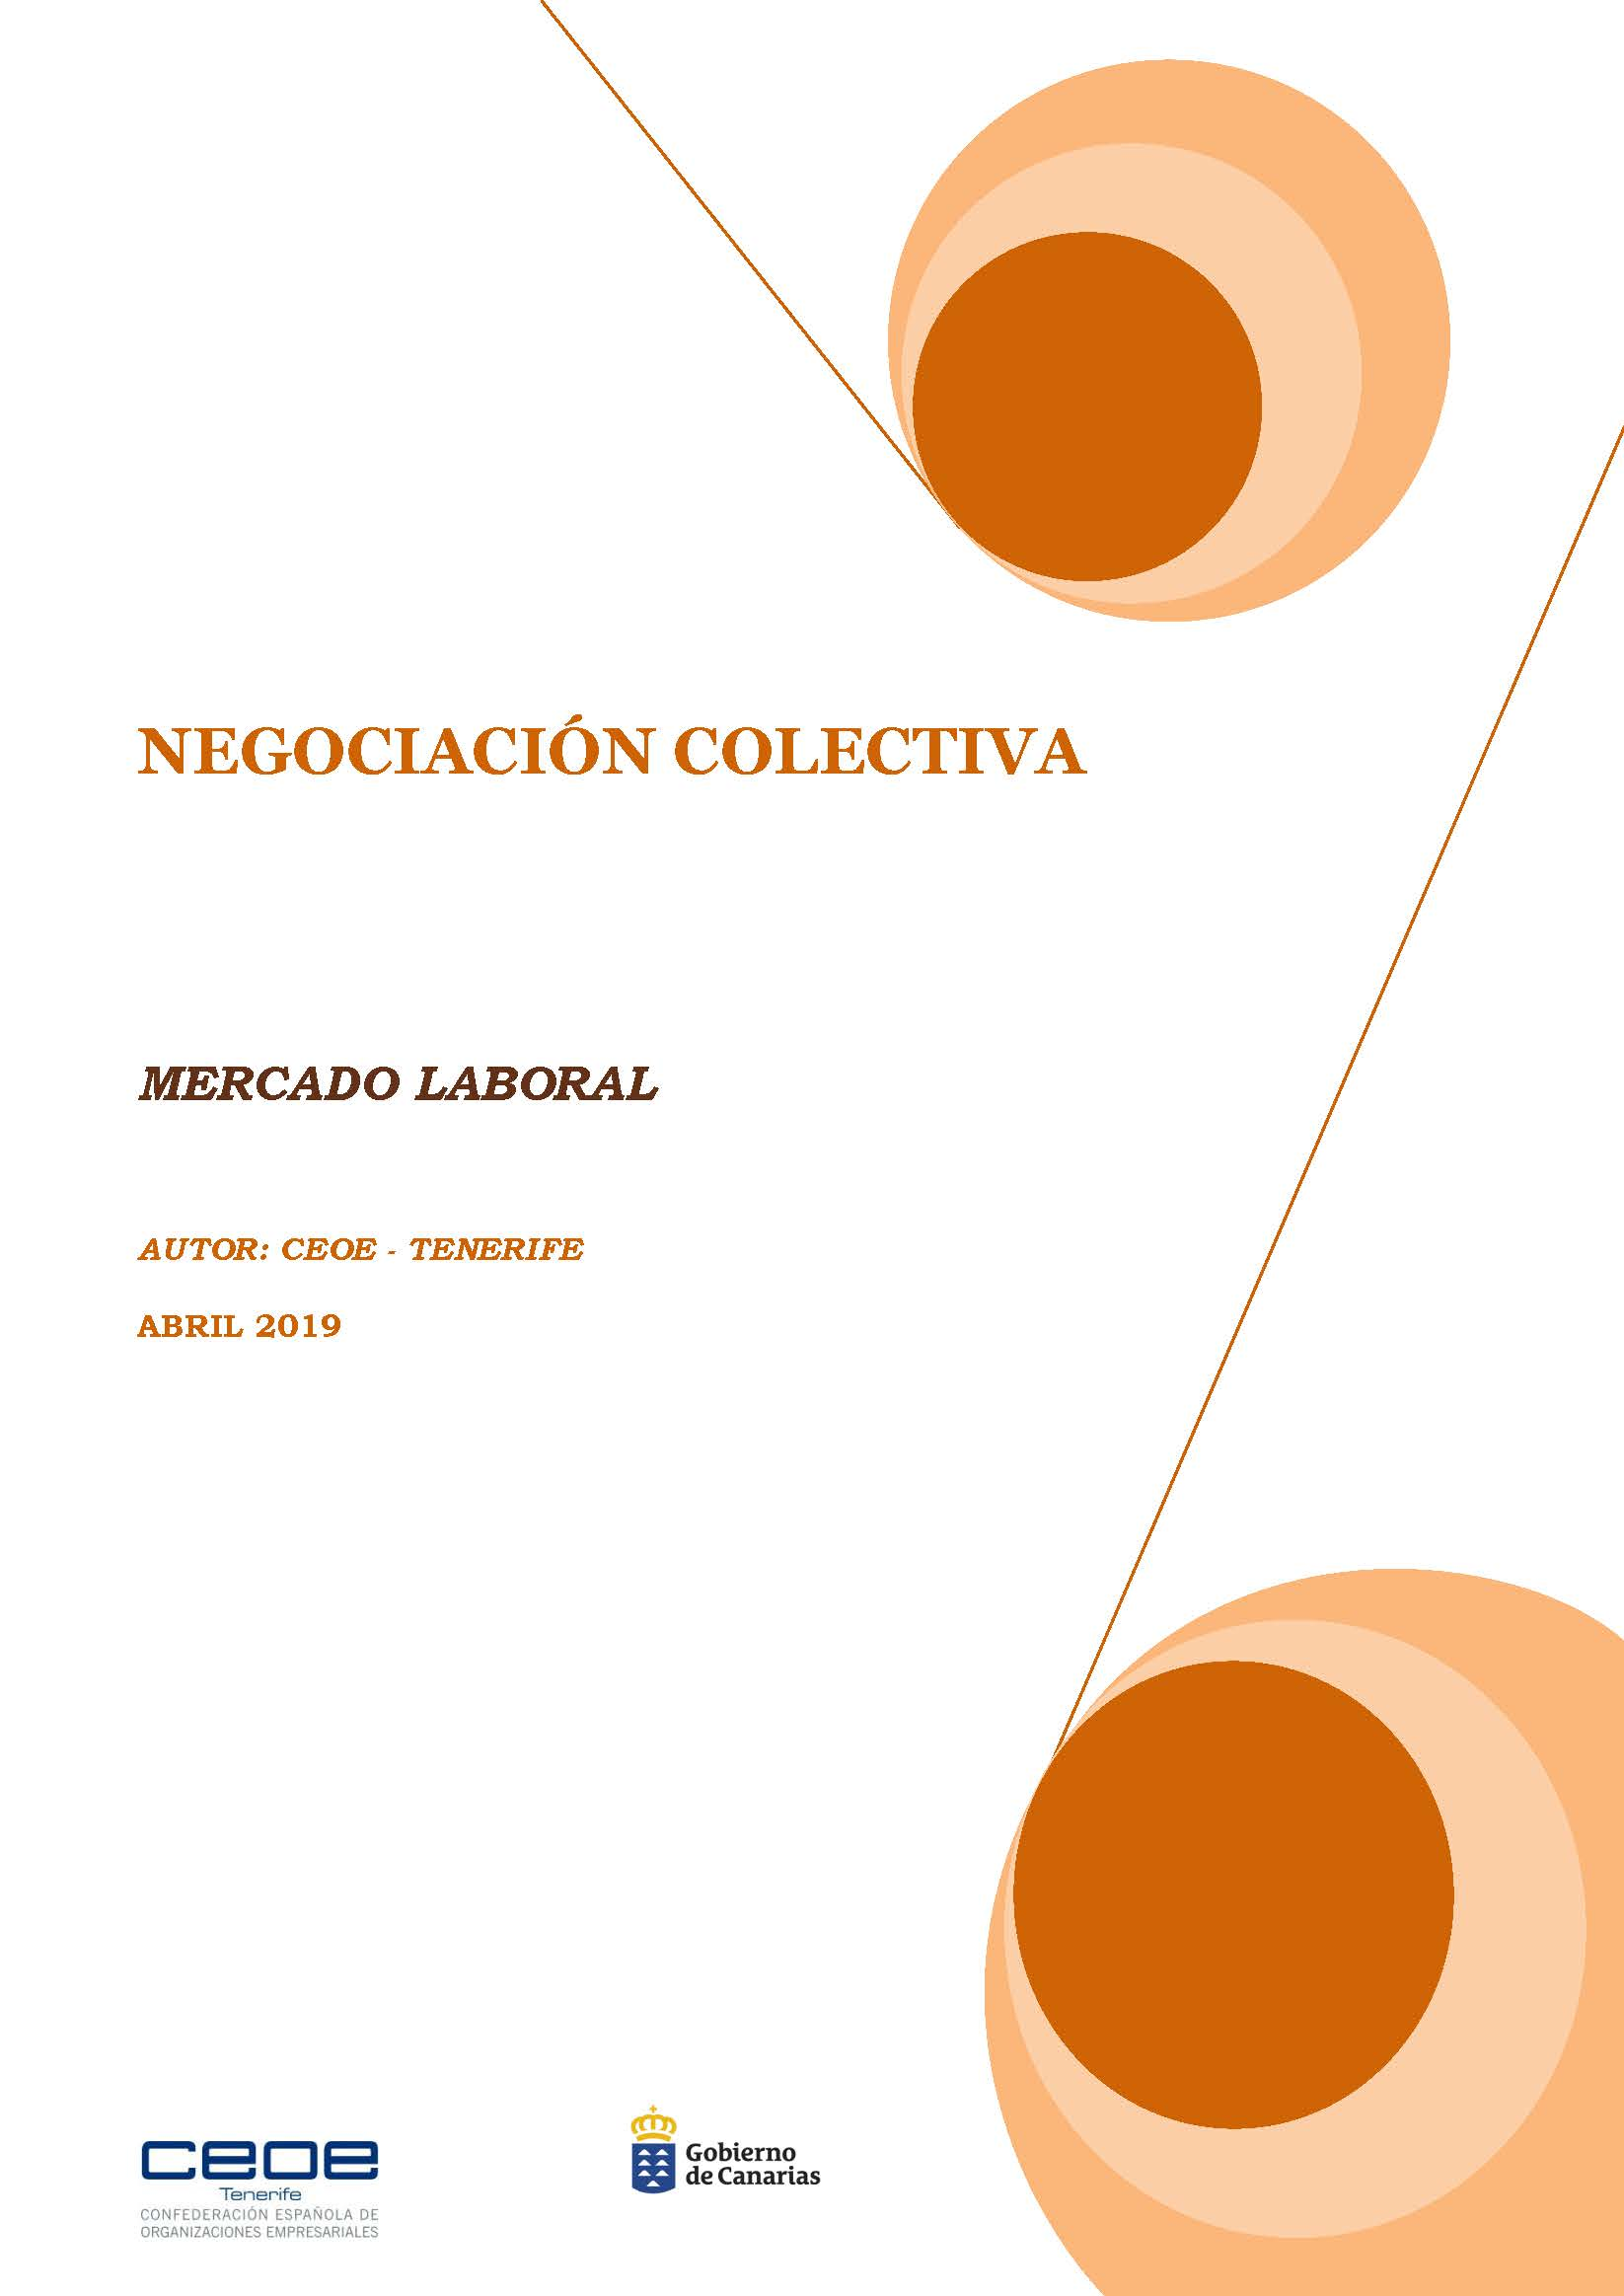 MERCADO LABORAL - NEGOCIACION COLECTIVA ABRIL 2019